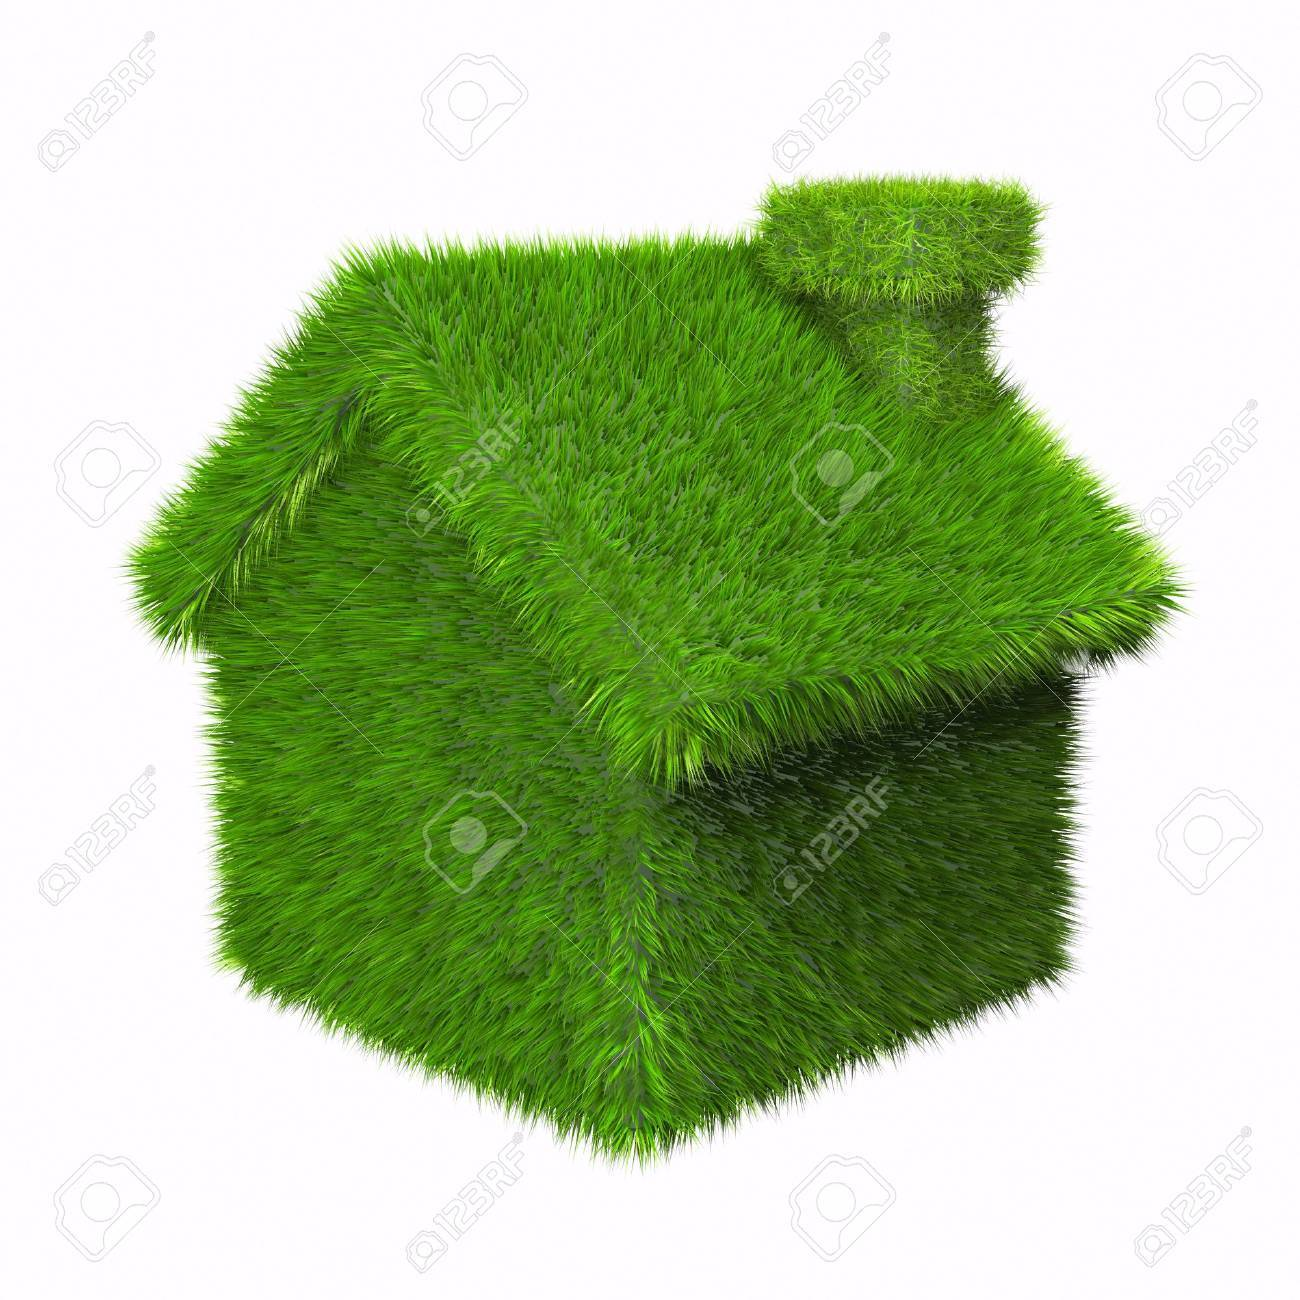 green grass house isolated on white background Stock Photo - 2812433